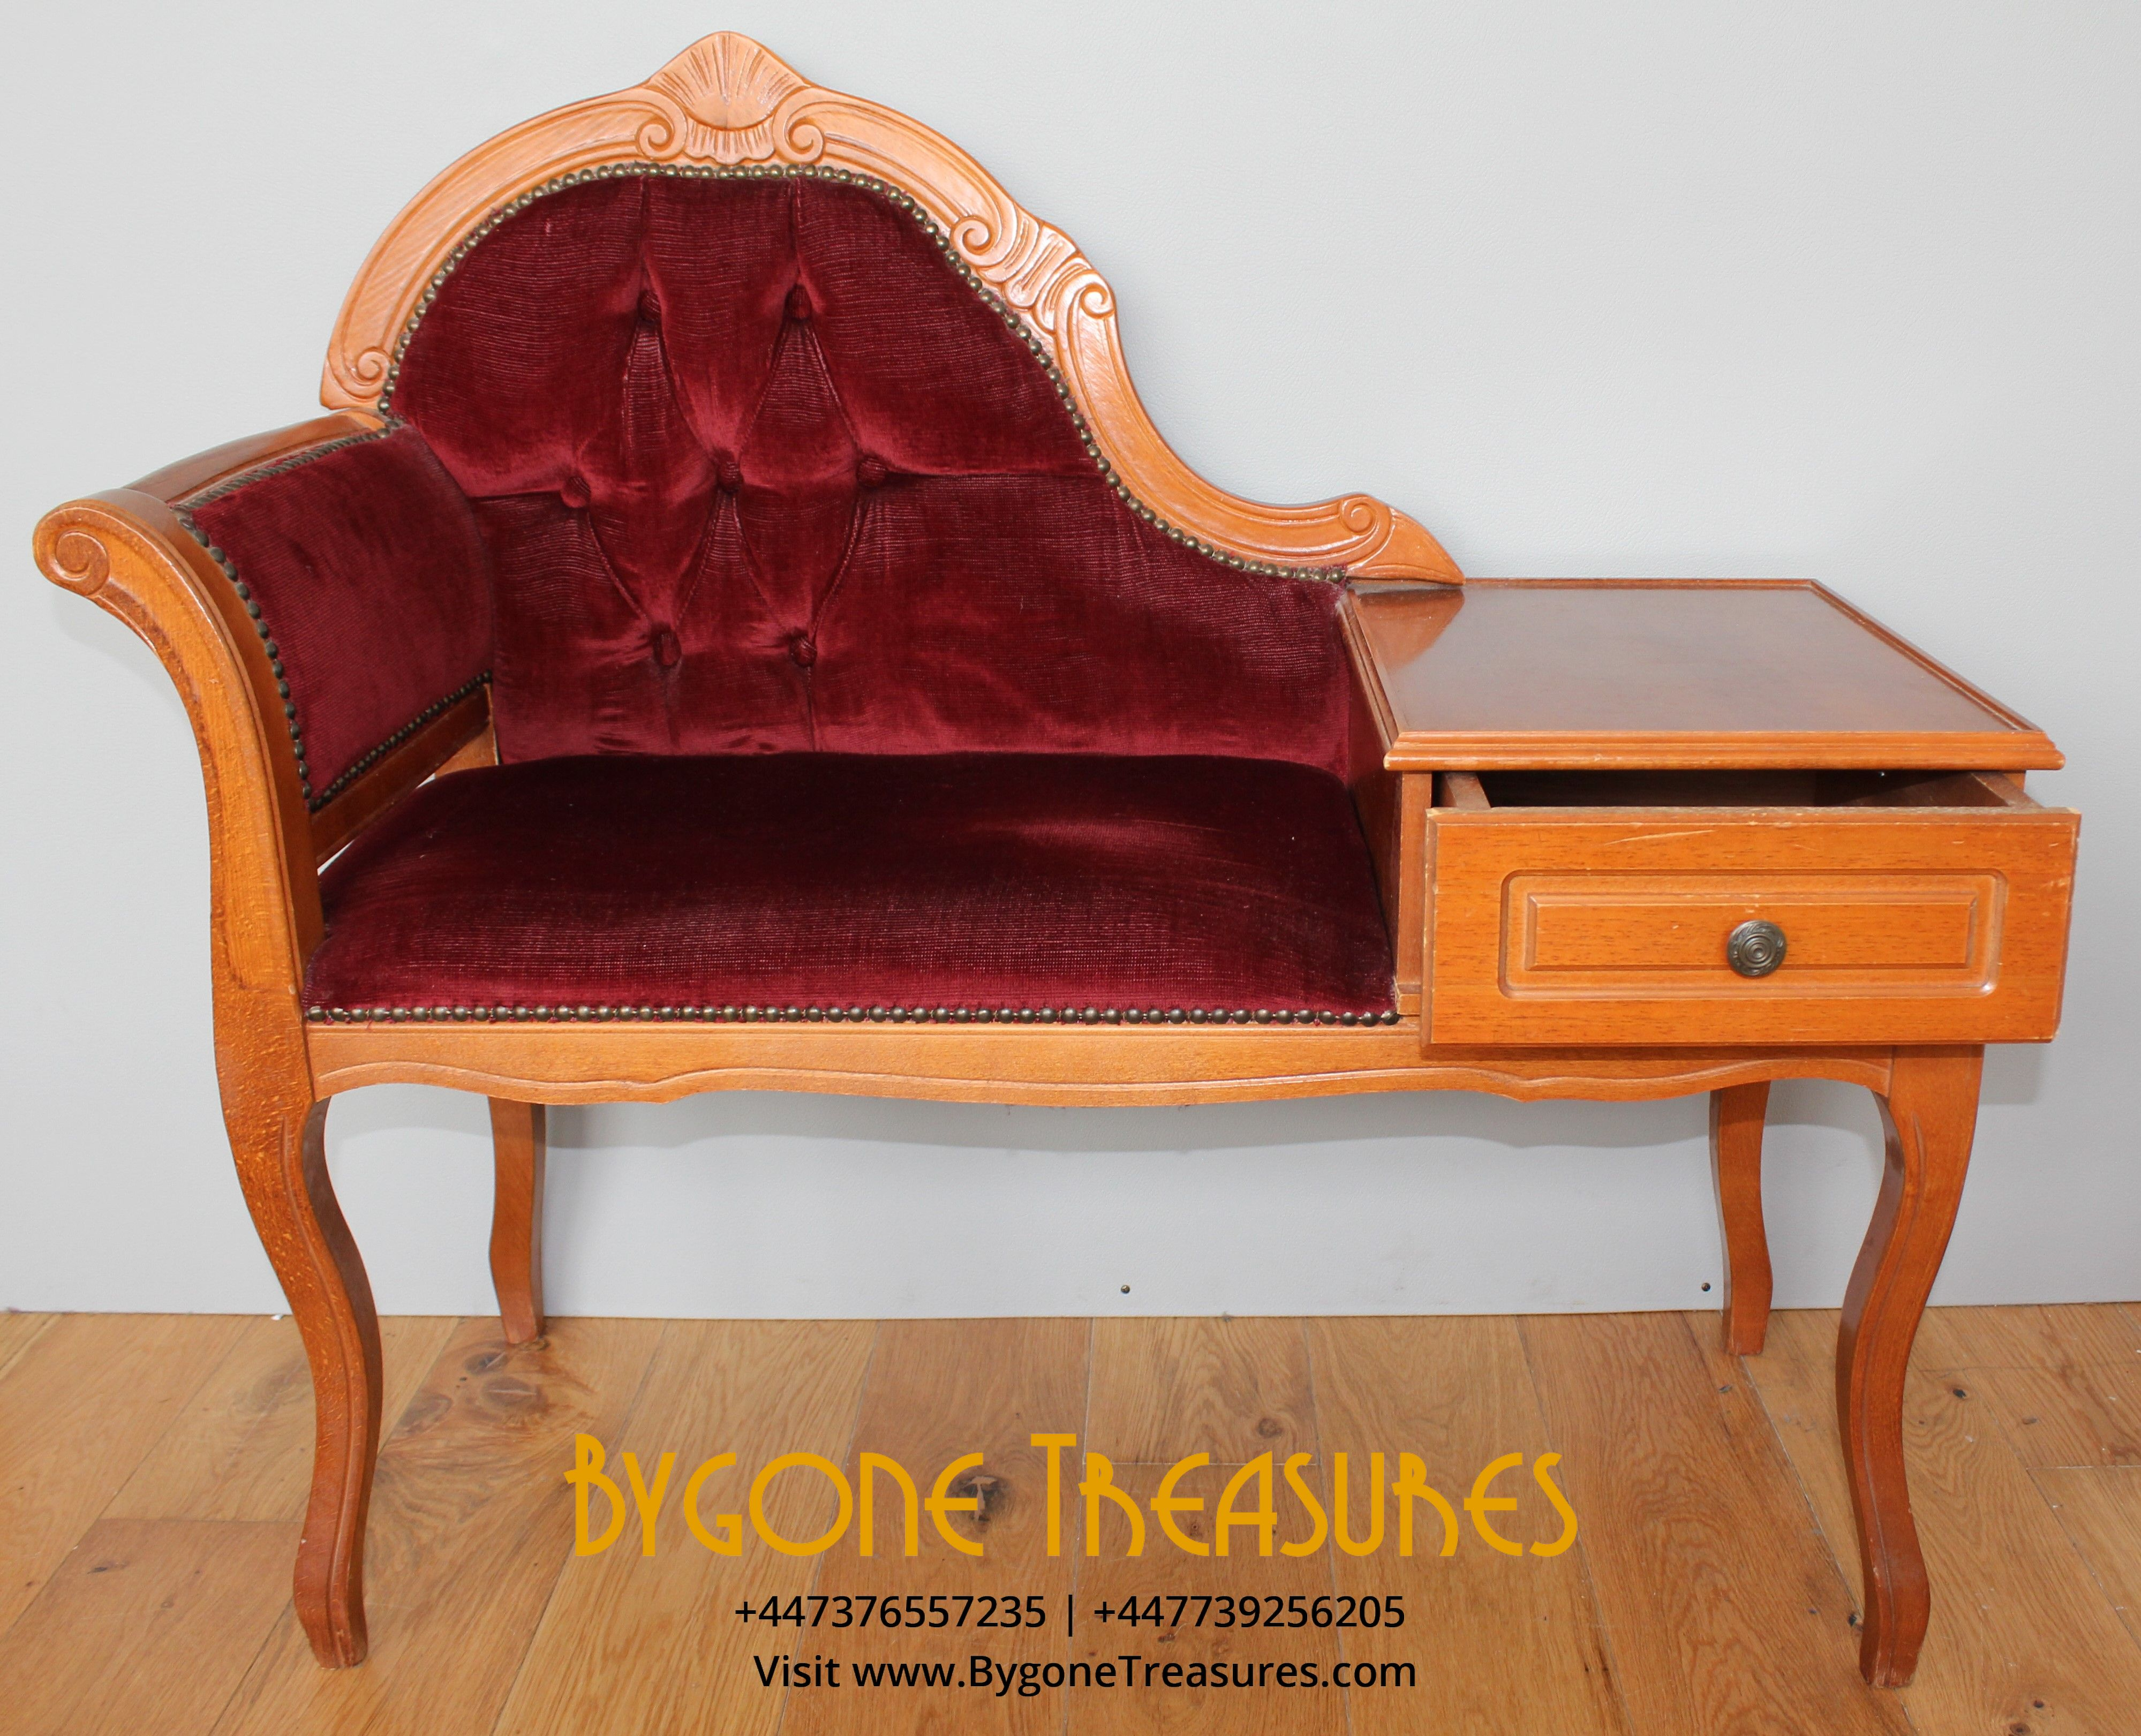 Telephone table with regal red crushed corduroy upholstery (11)_result